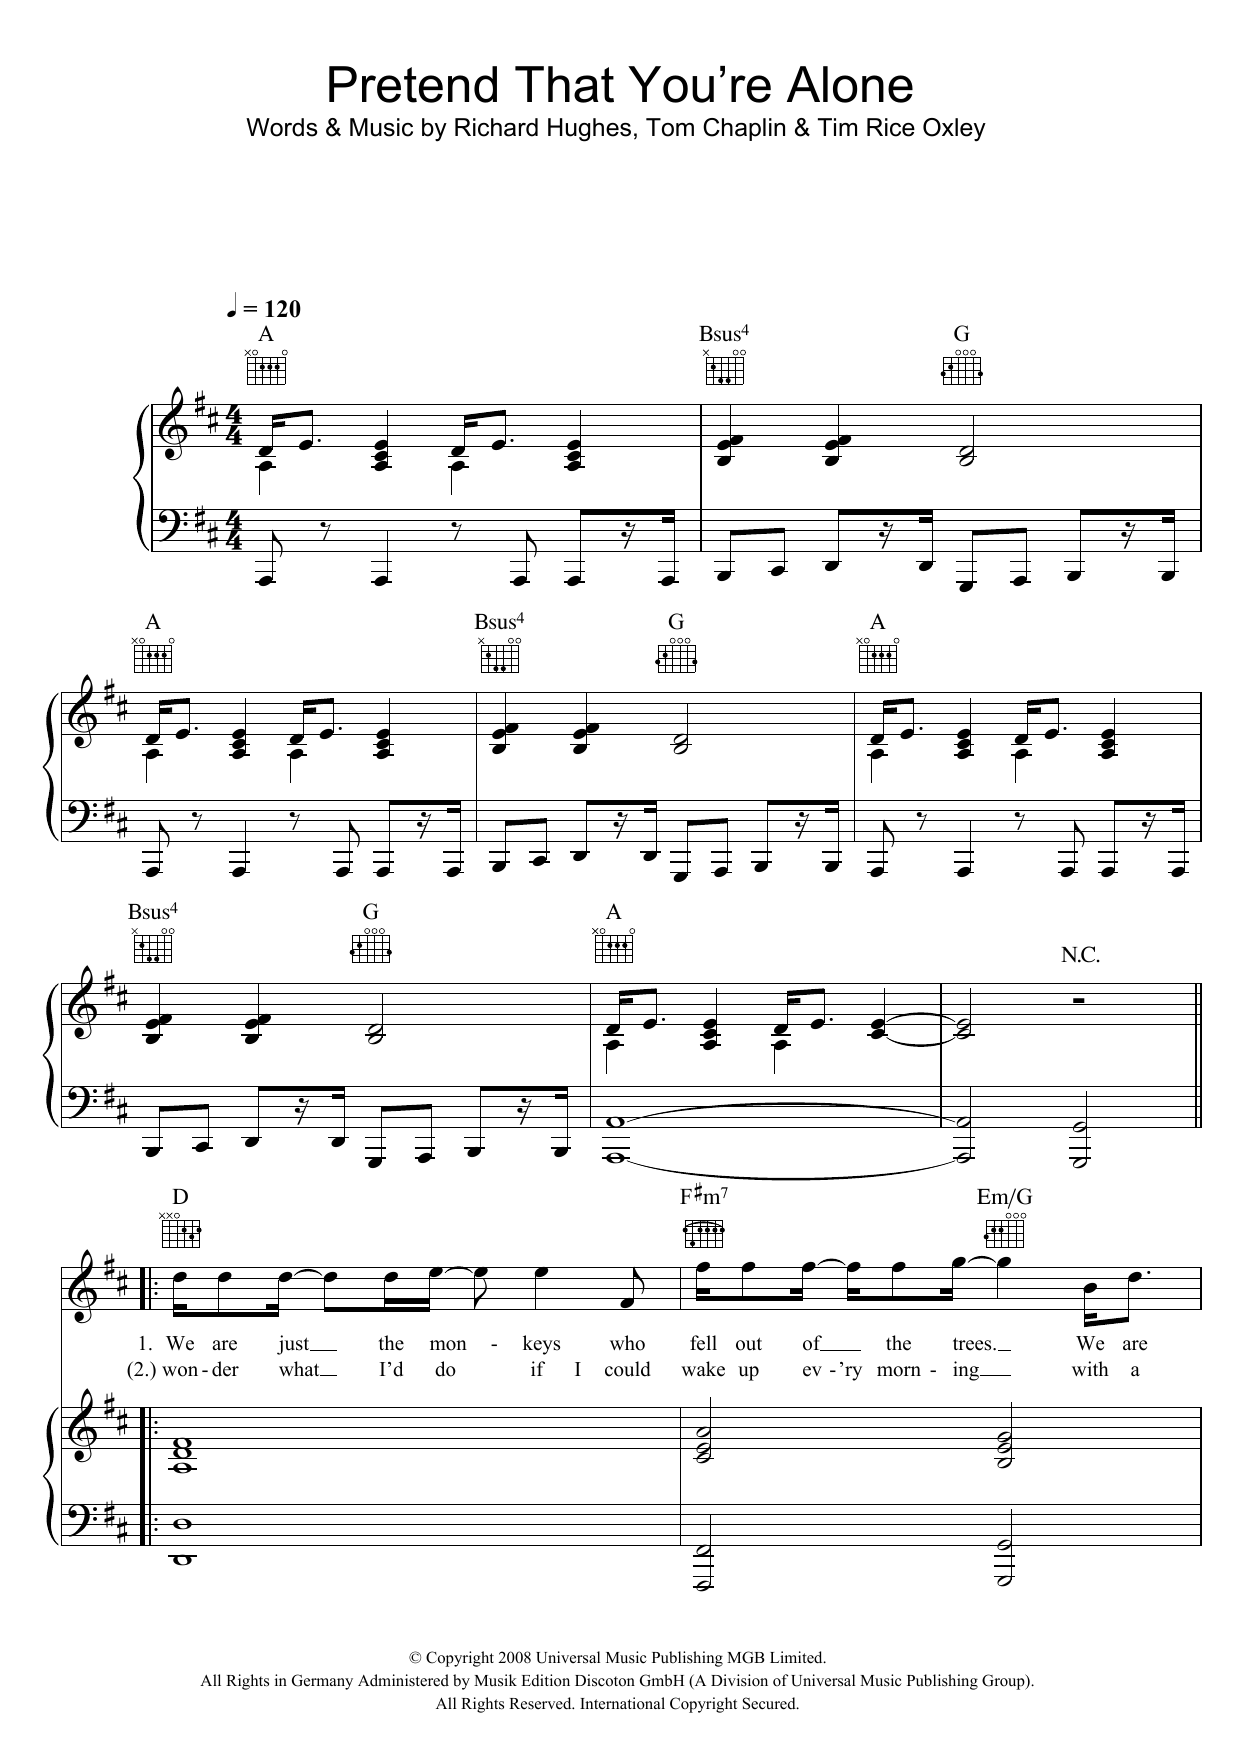 Keane Pretend That You're Alone sheet music preview music notes and score for Piano, Vocal & Guitar including 7 page(s)